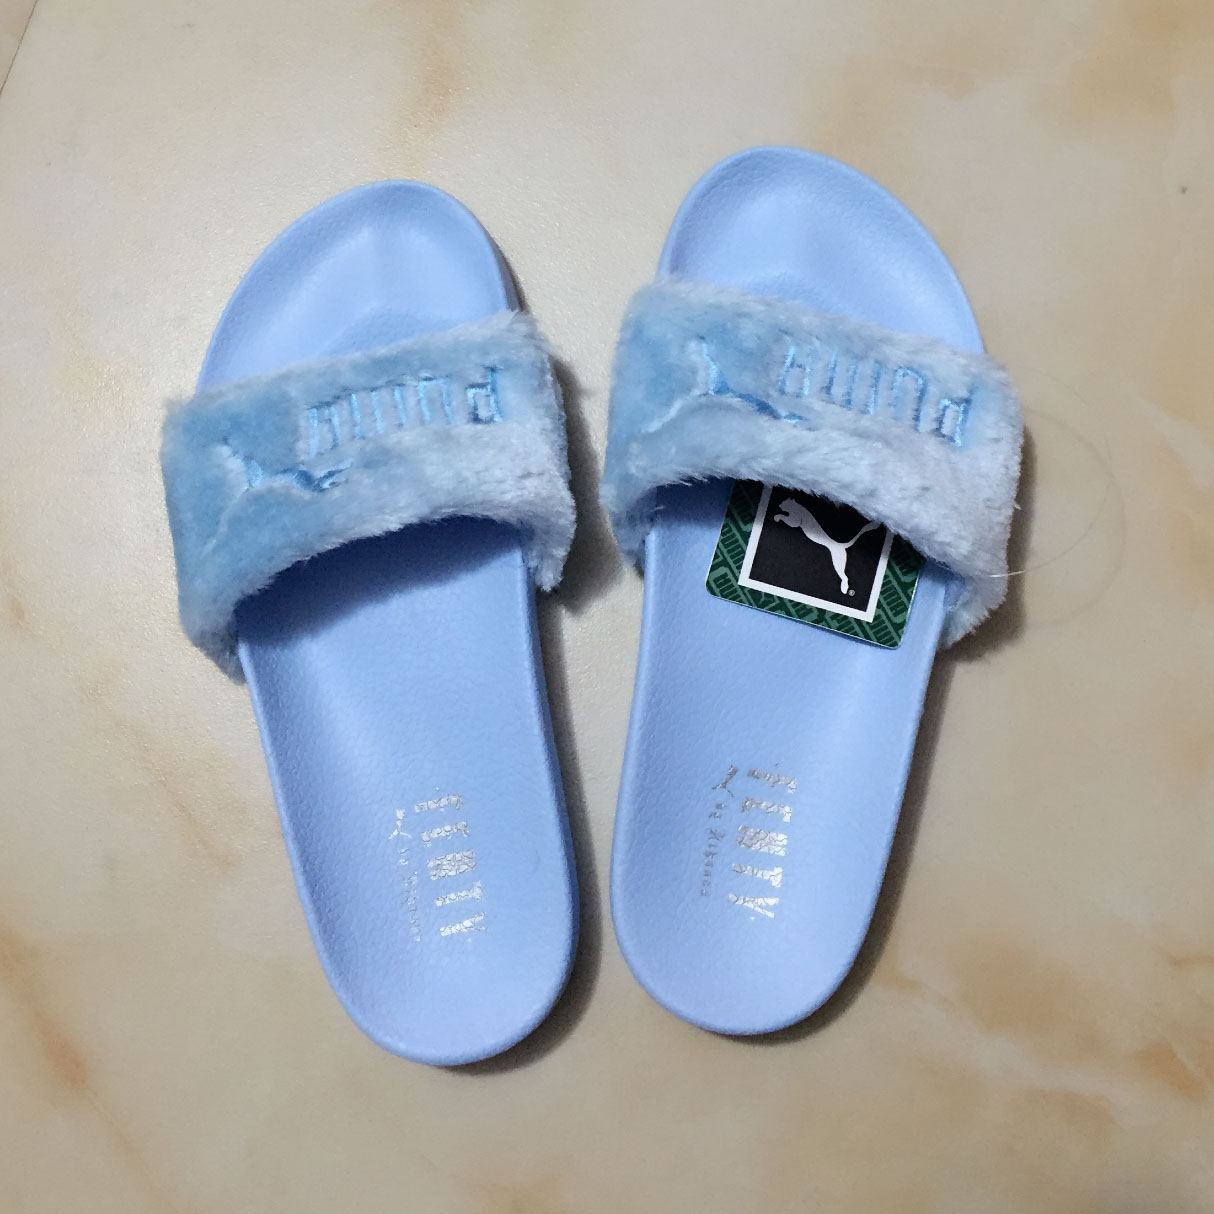 100% Real Rihanna Womens Rihanna Slipper Shoes Us6-9